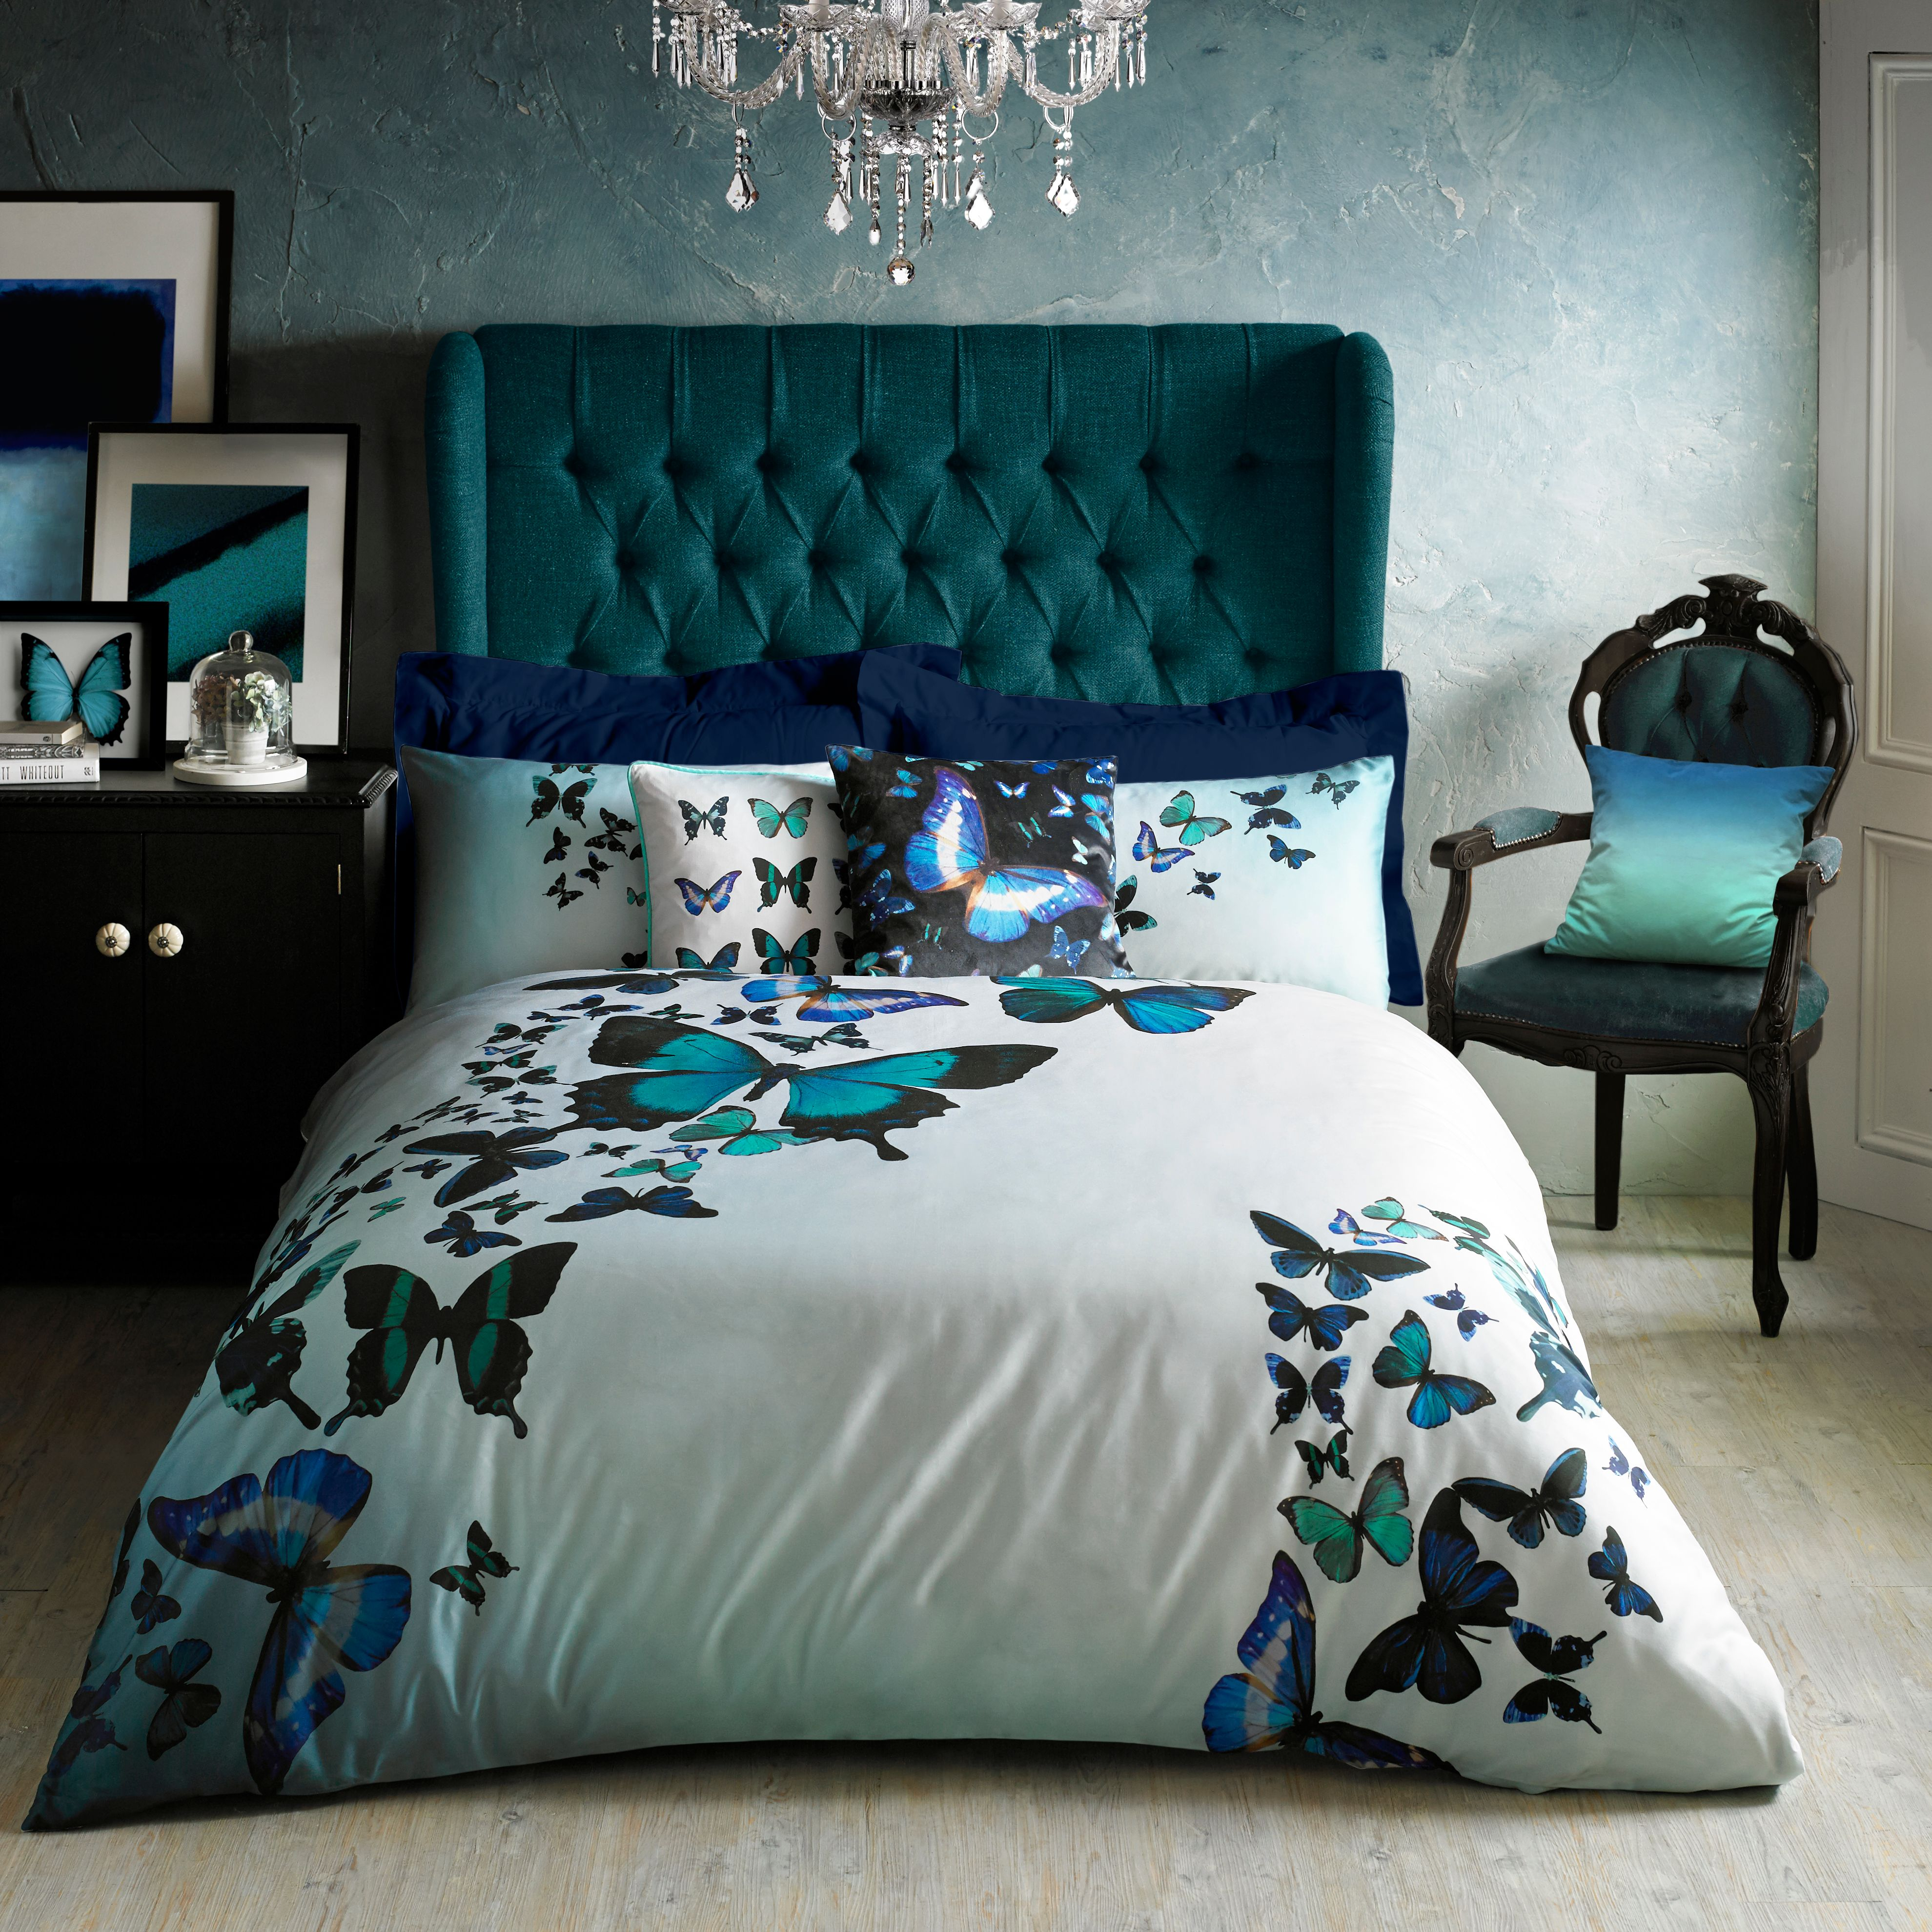 Image of Ted Baker Butterfly collective duvet cover